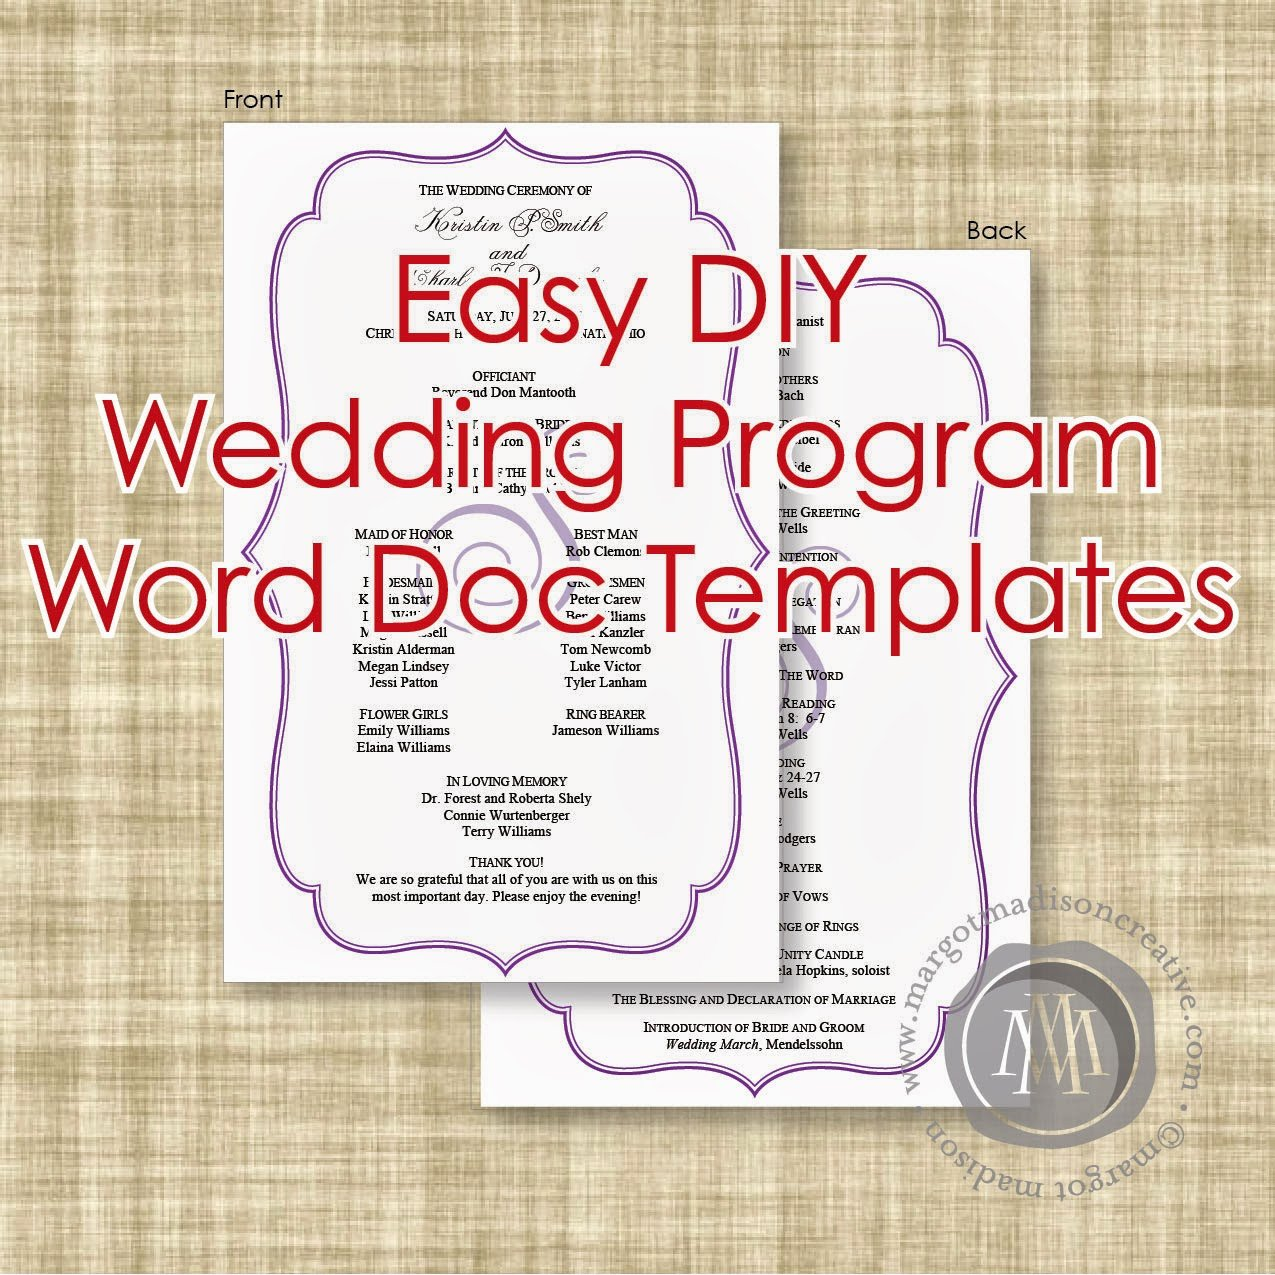 Free Diy Wedding Programs Templates Awesome Margotmadison Diy Wedding Program Word Doc Templates now